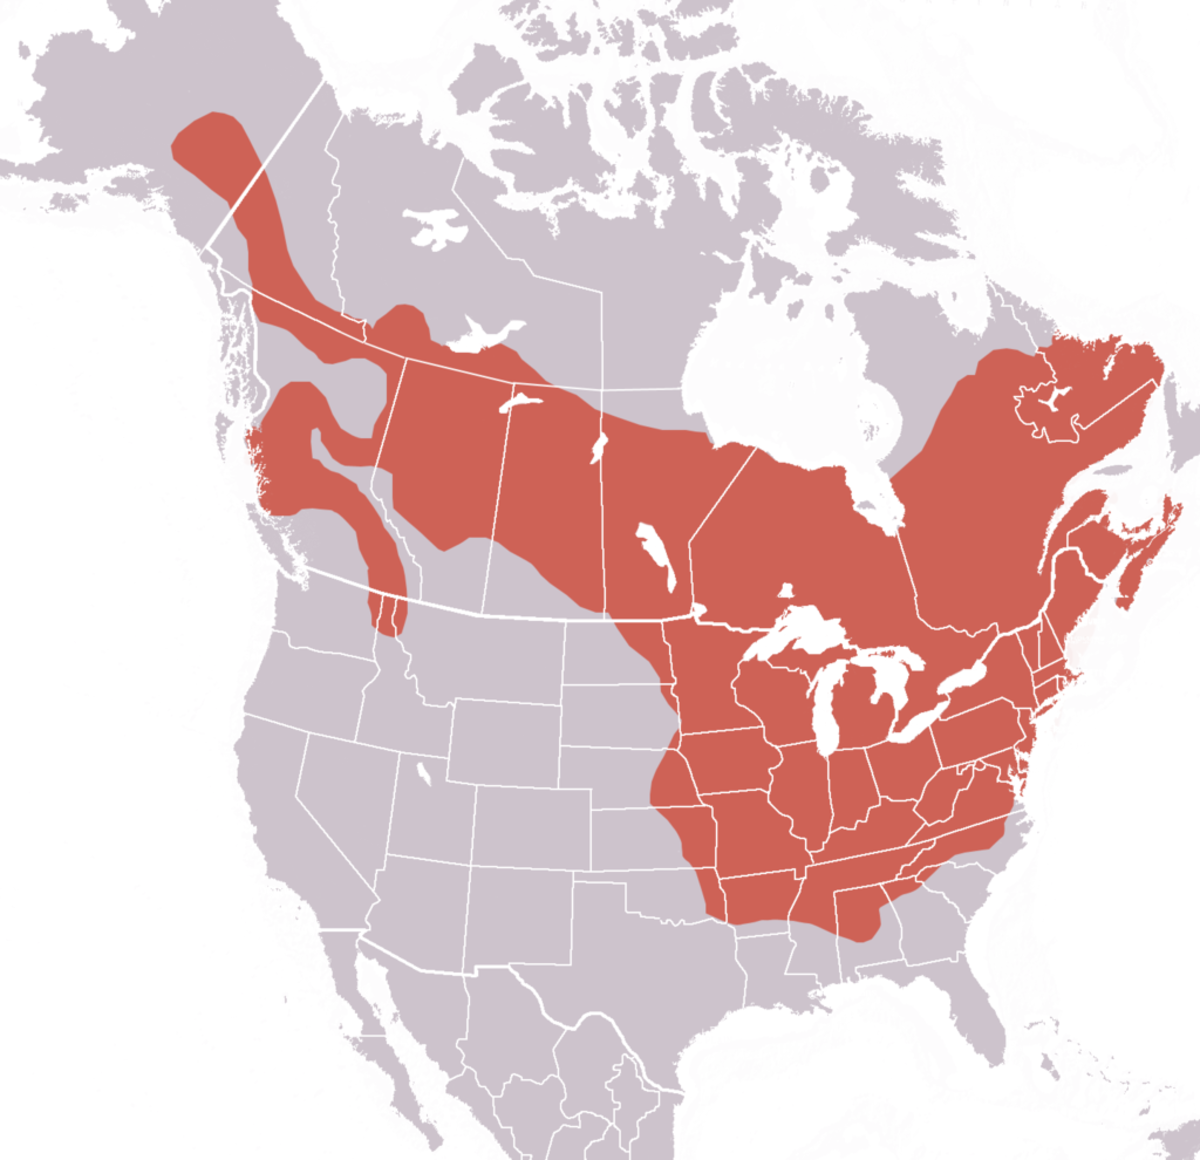 Red is the habitation range of groundhogs.